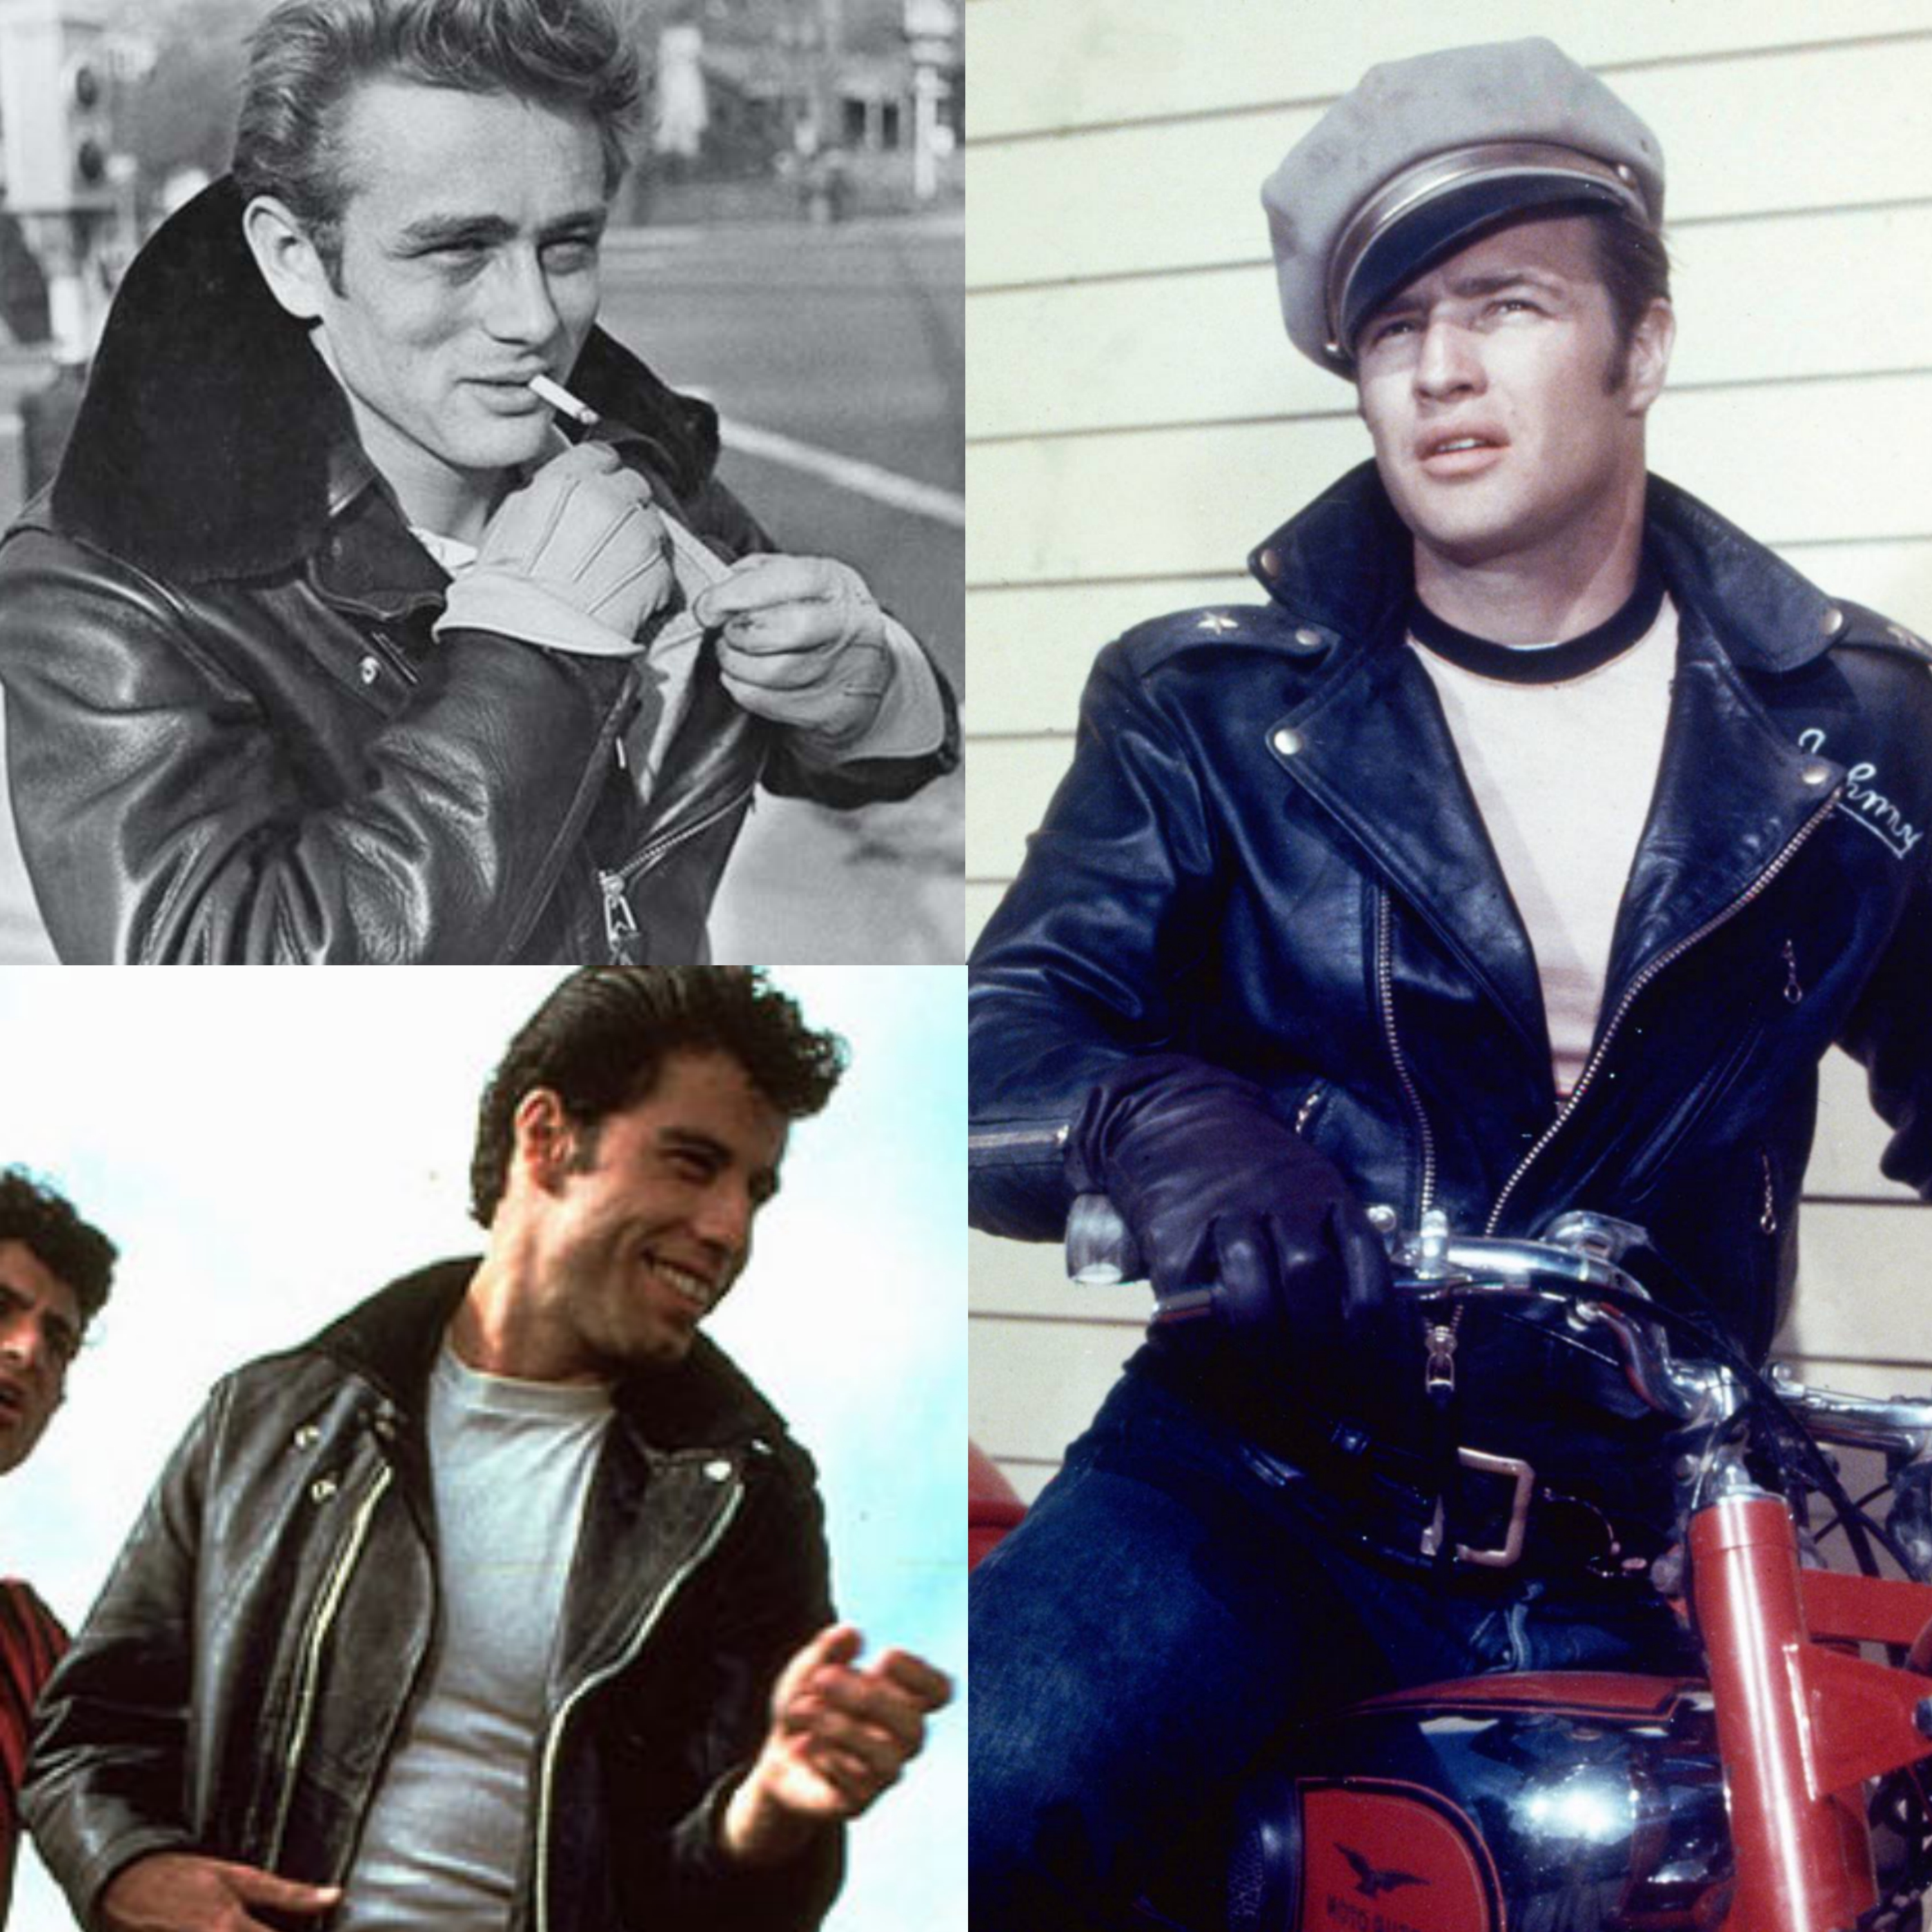 grease_john_travolta_leather_jacket_216_Fotor_Collage